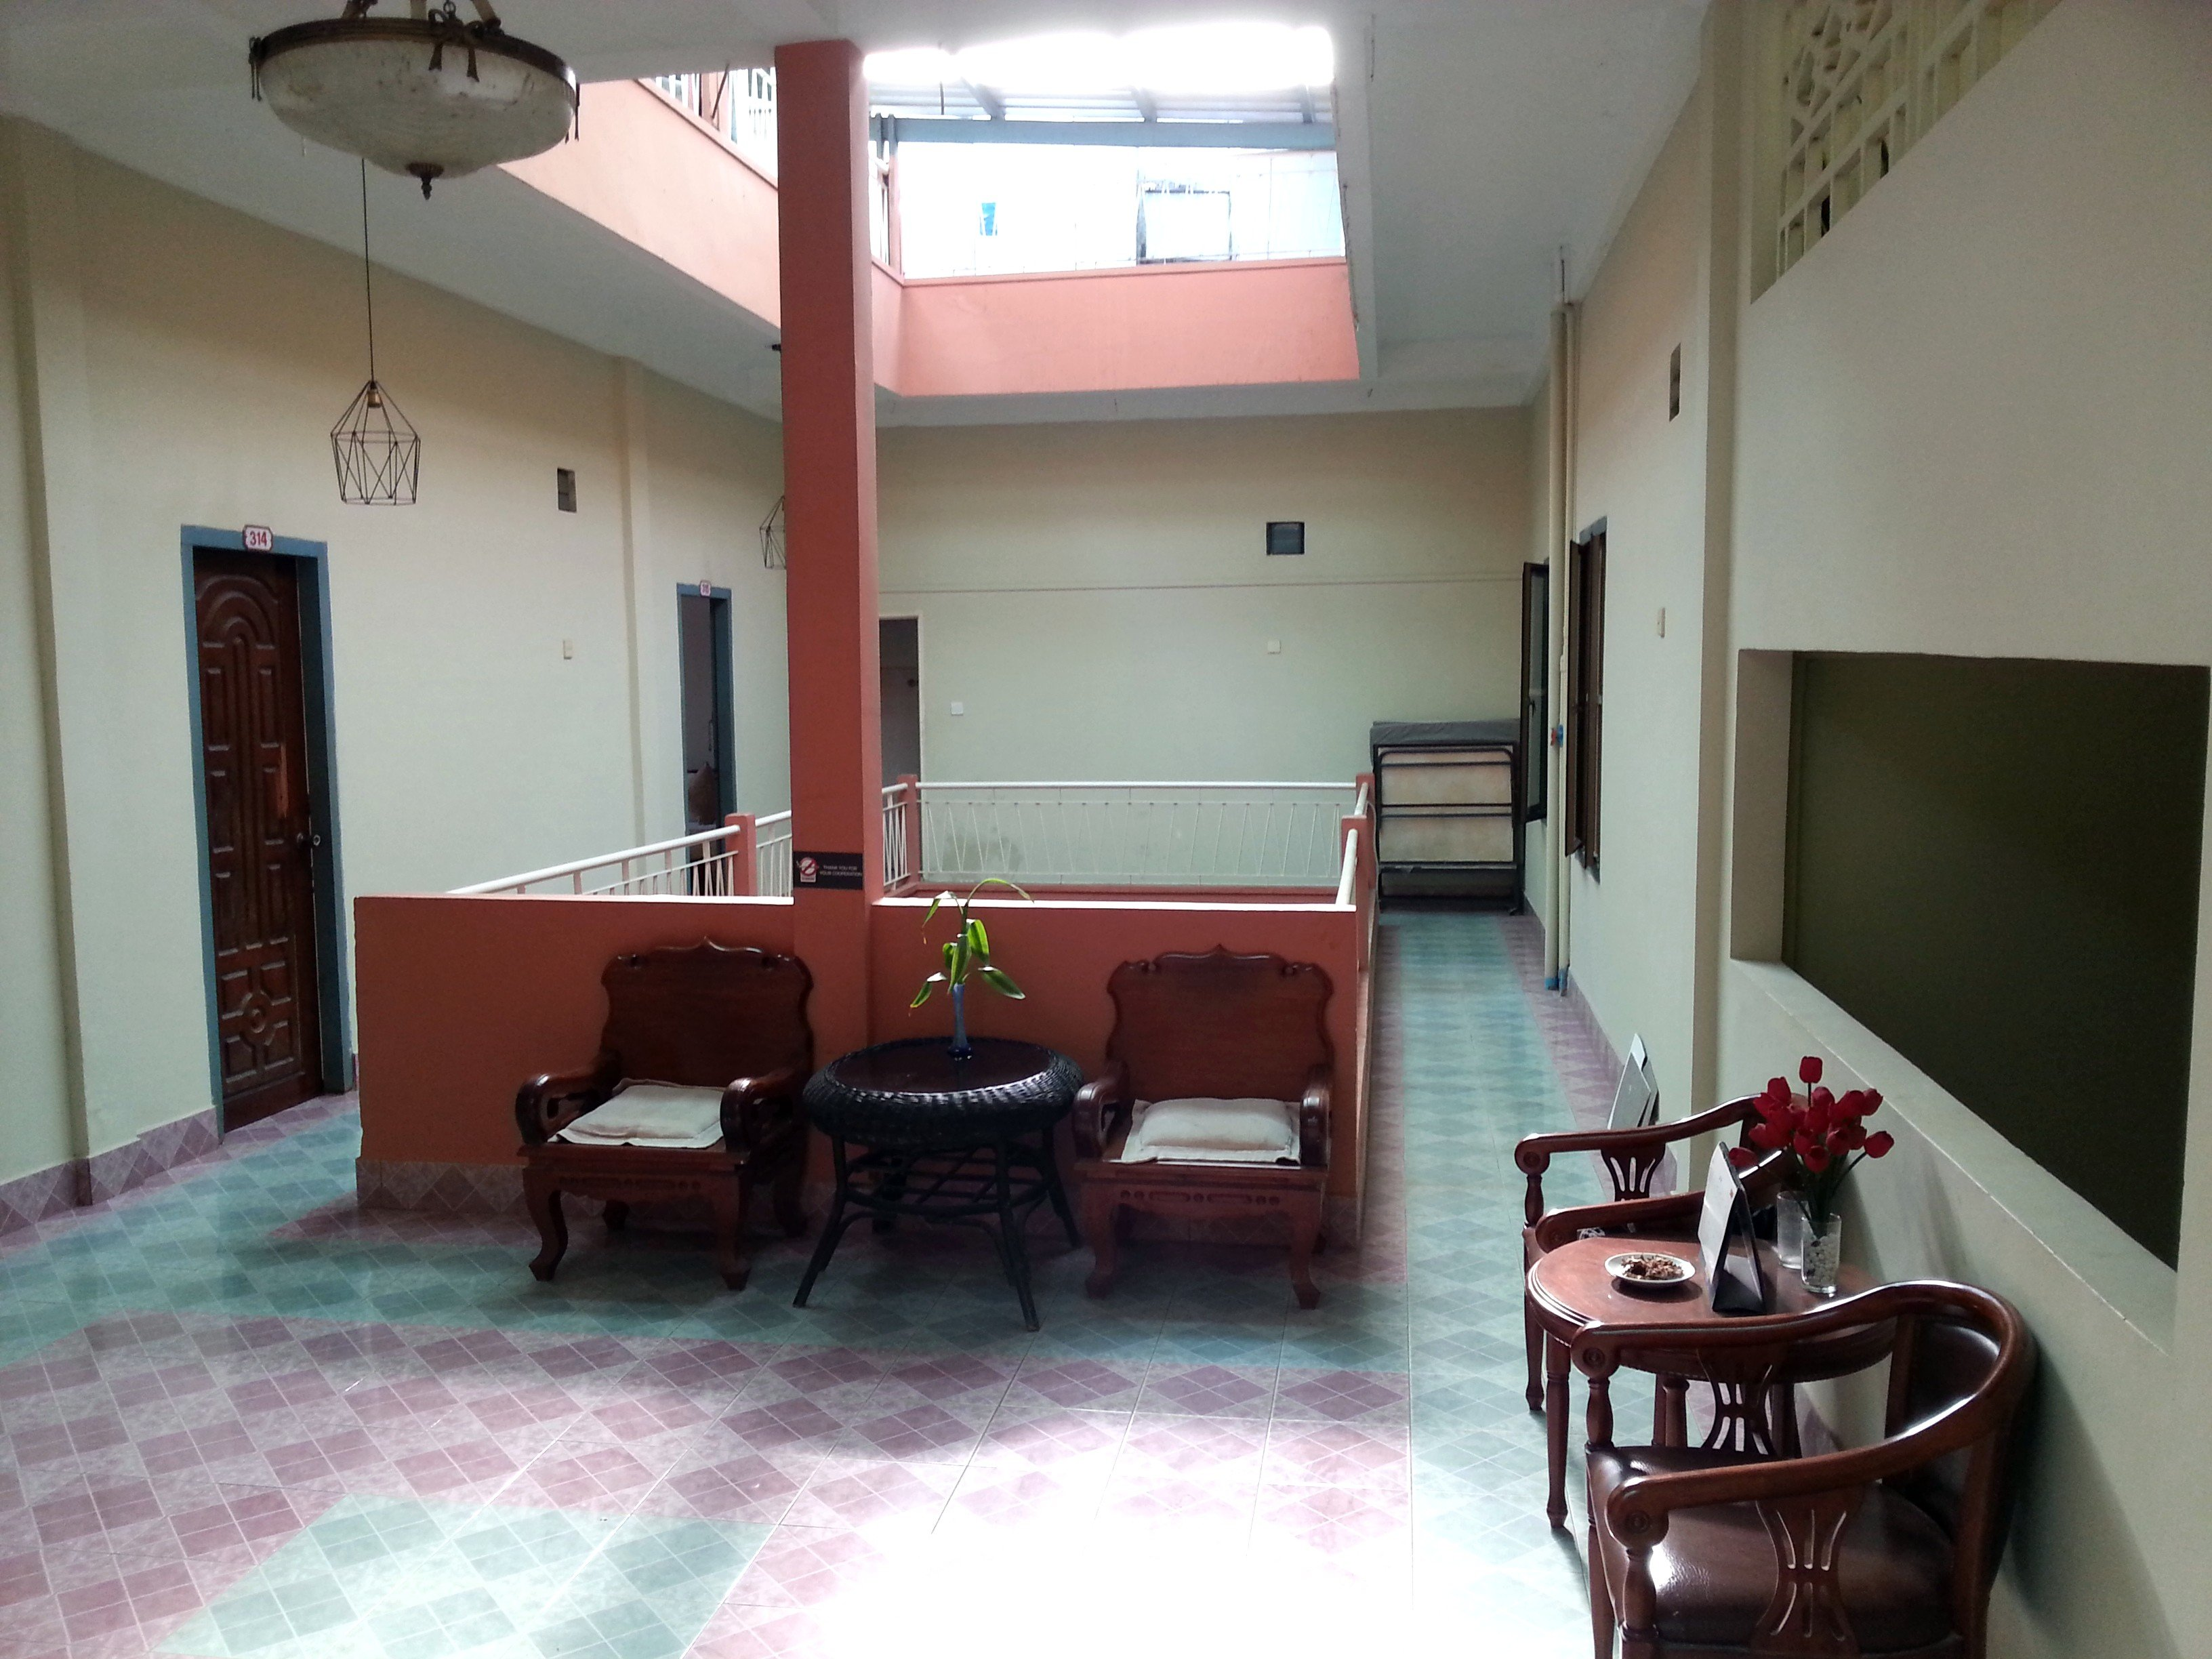 Communal areas at the Royal Hotel